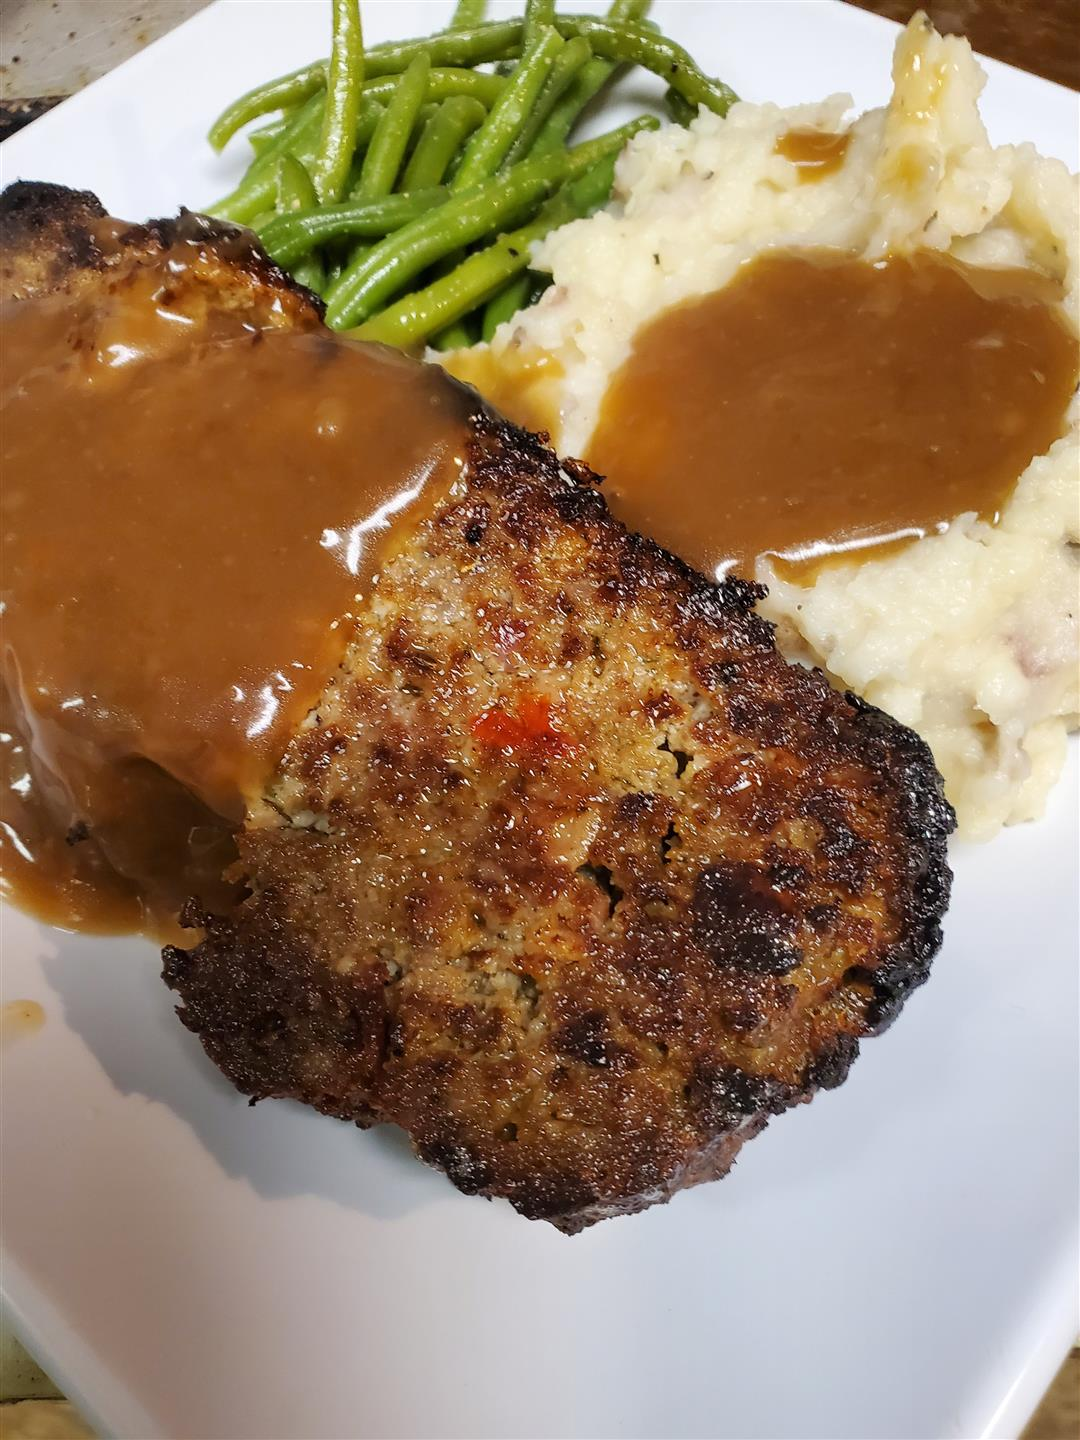 meat entree with mashed potatoes, gravy and green beans